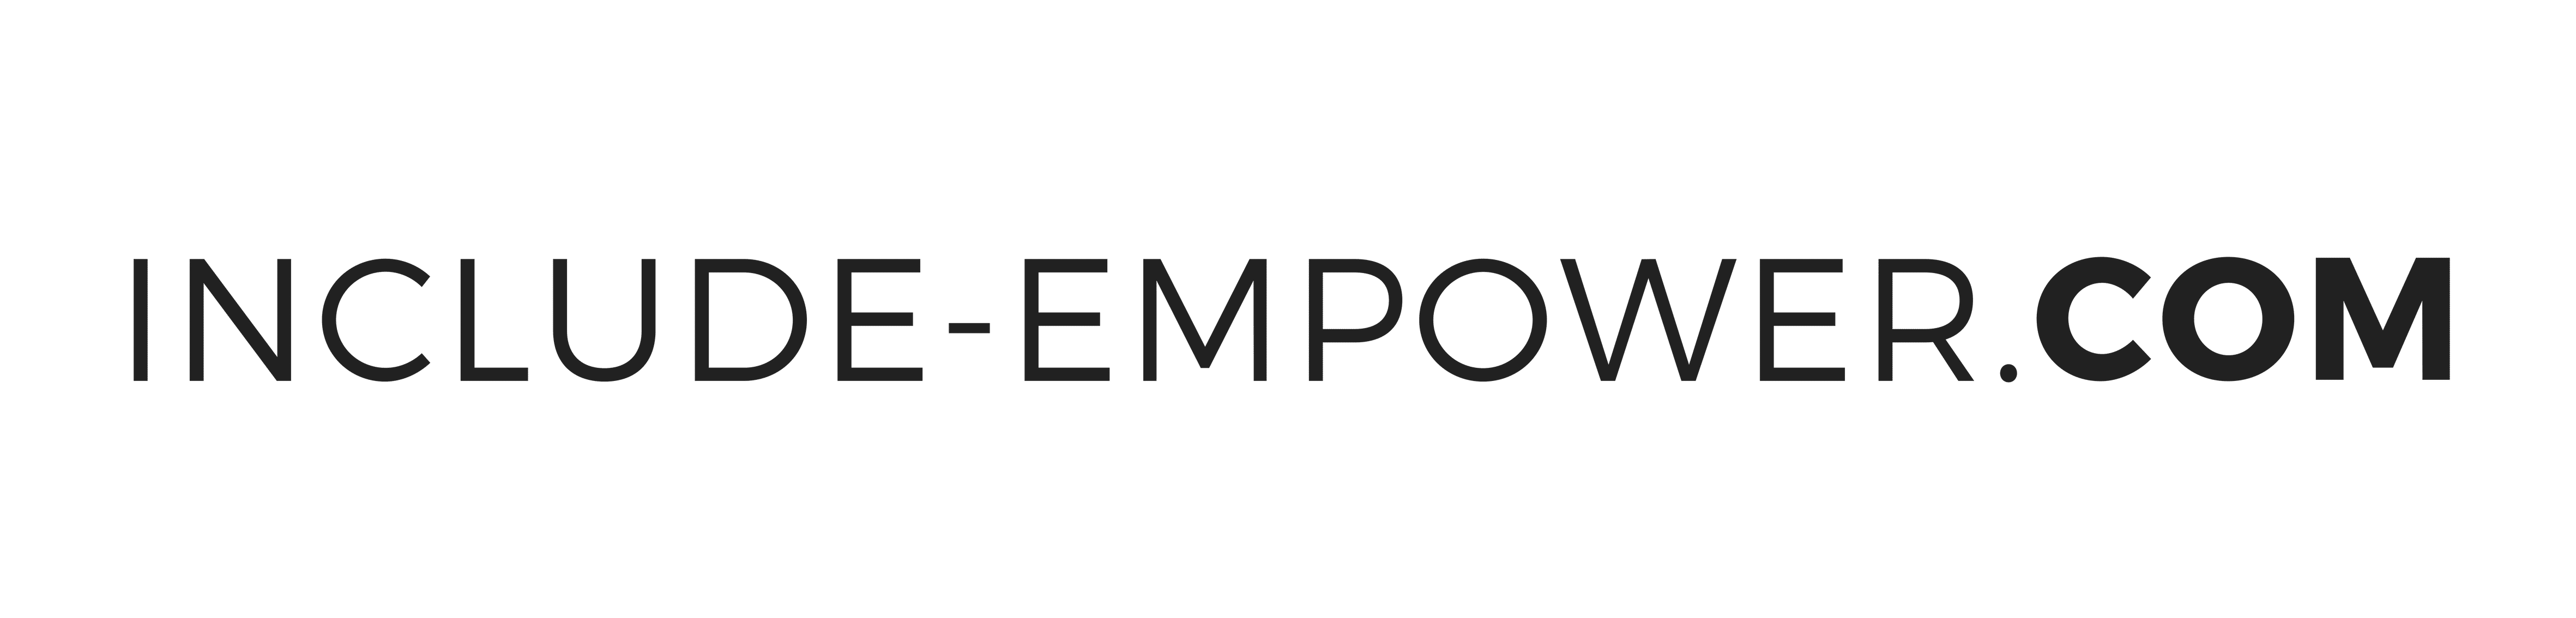 Include-Empower.Com